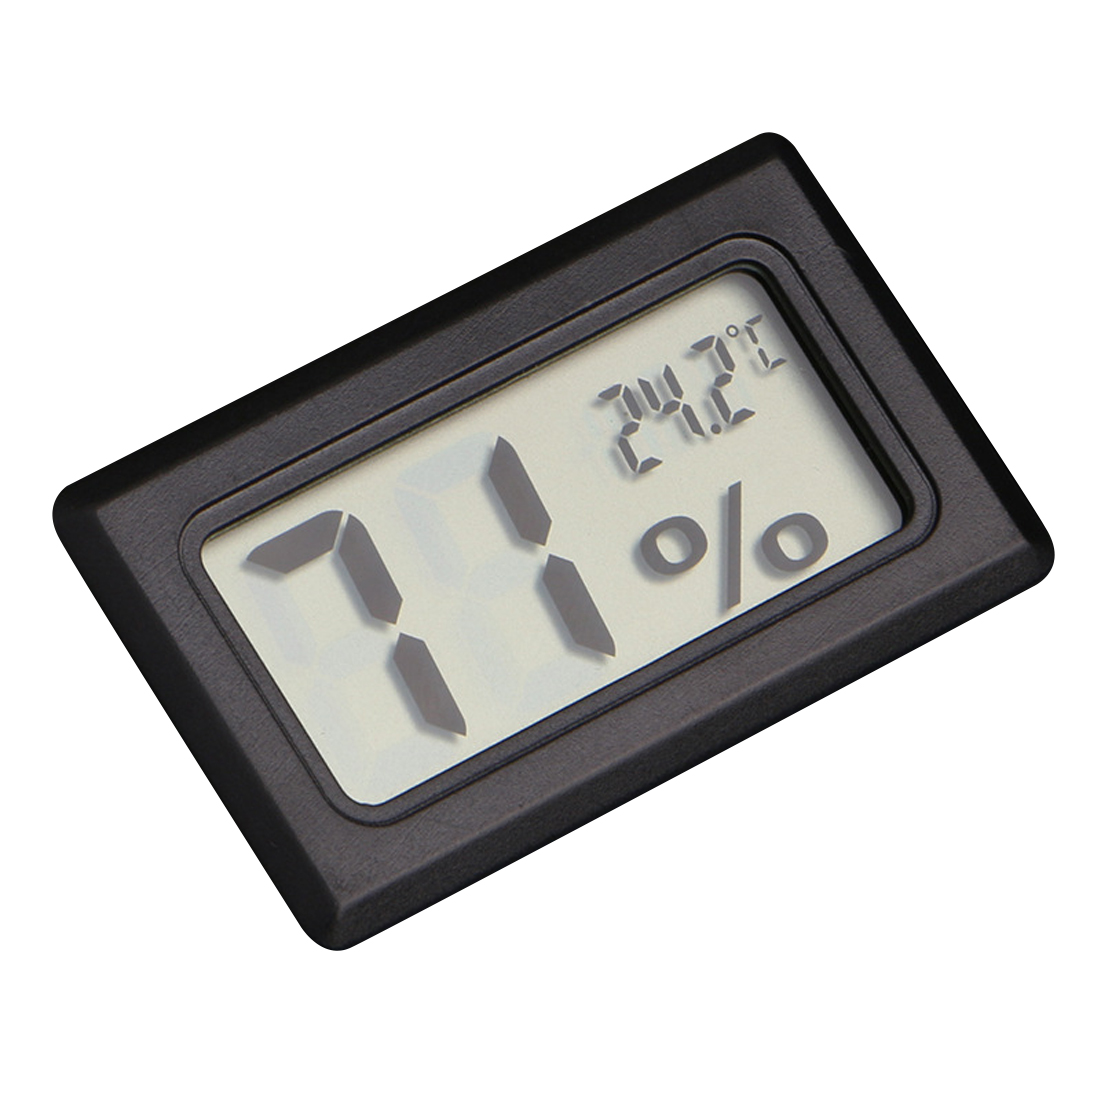 Mini Black Digital LCD Temperature Humidity Indoor Room Humidity Meter Thermometer Hygrometer Temperature Sensor Humidity car thermometer indoor thermometer thermal camera humidity u0026 temperature meter gm1360